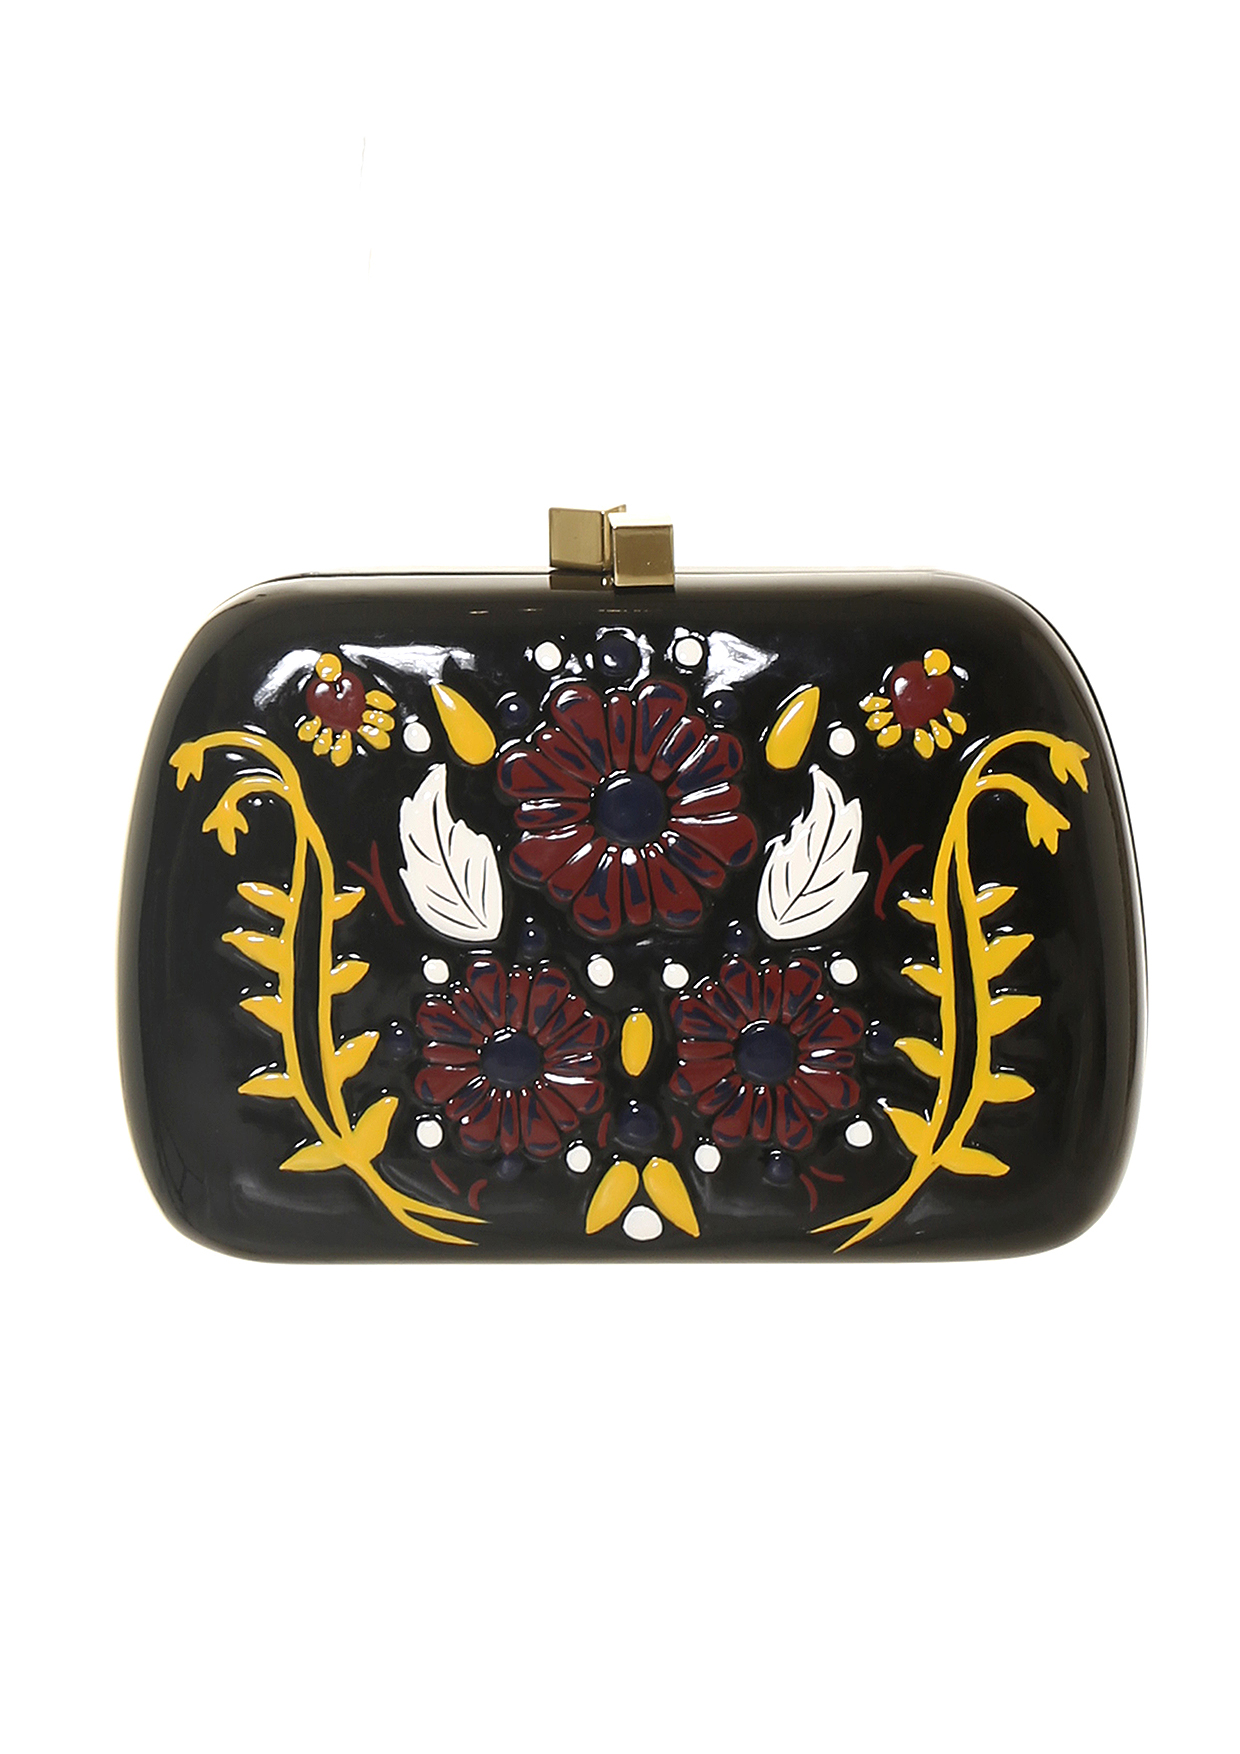 Lolita clutch bag - 318€ NOW 229€